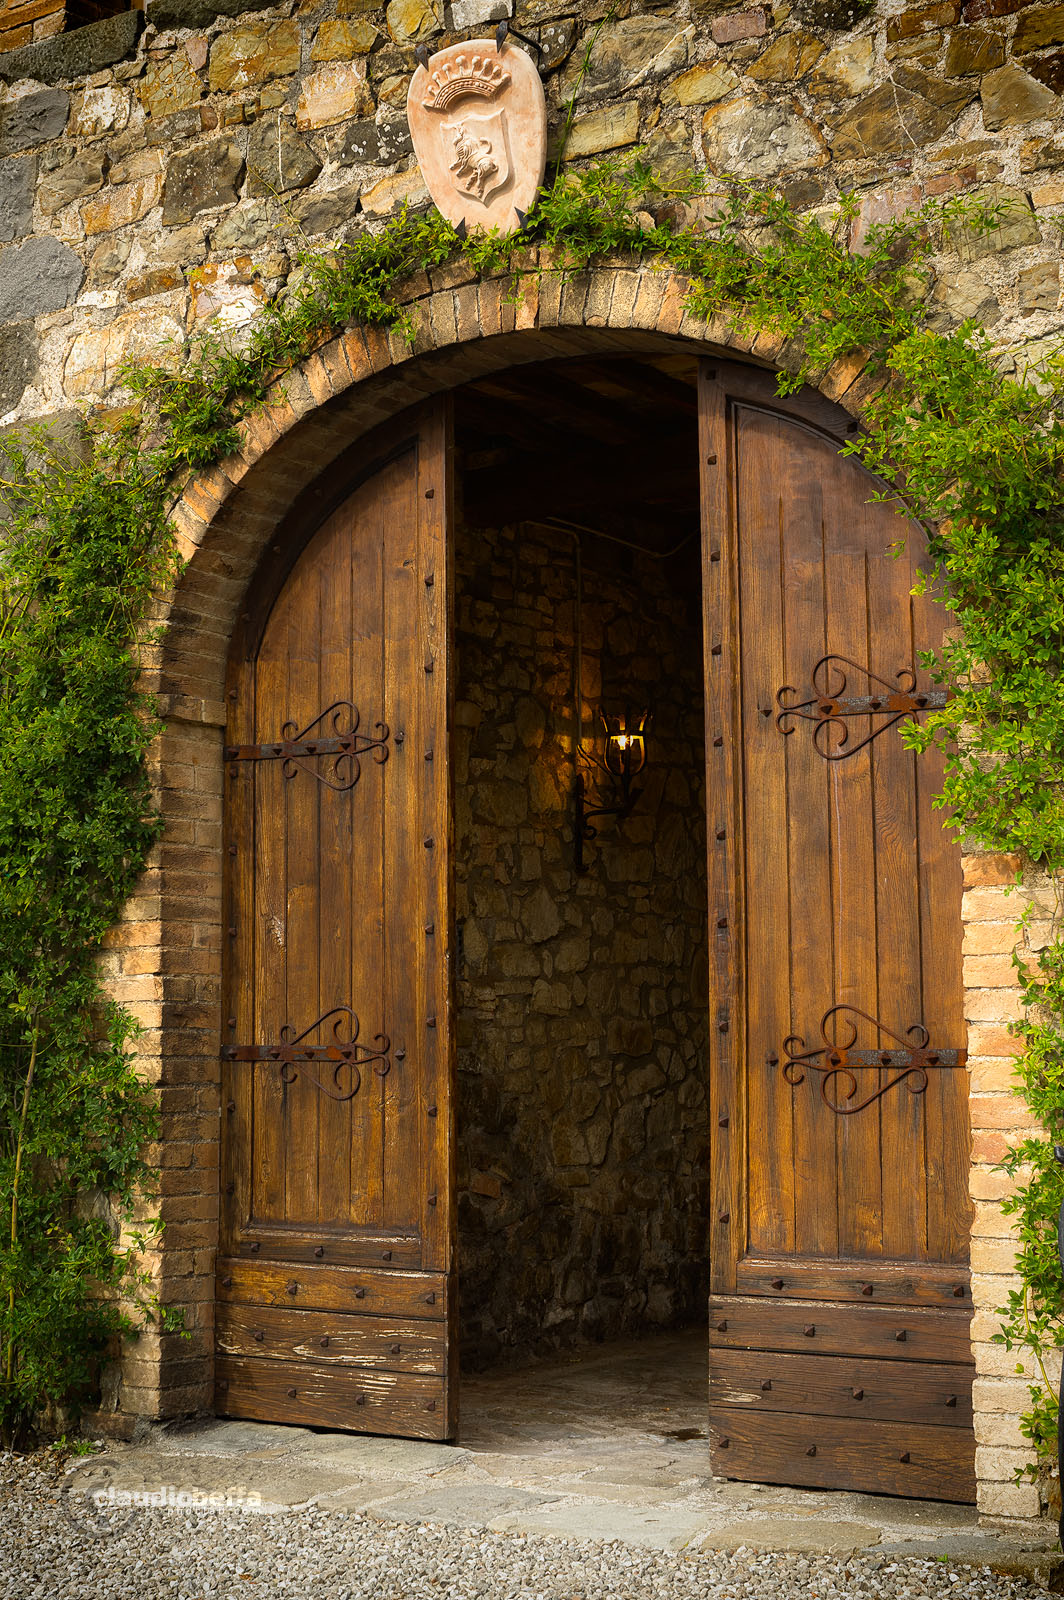 Farmhouse, Gate, Cellar, Wine, Wine-making, Costanti, Tuscany, Toscana, Val d'Orcia, Montalcino, Italy, Italia